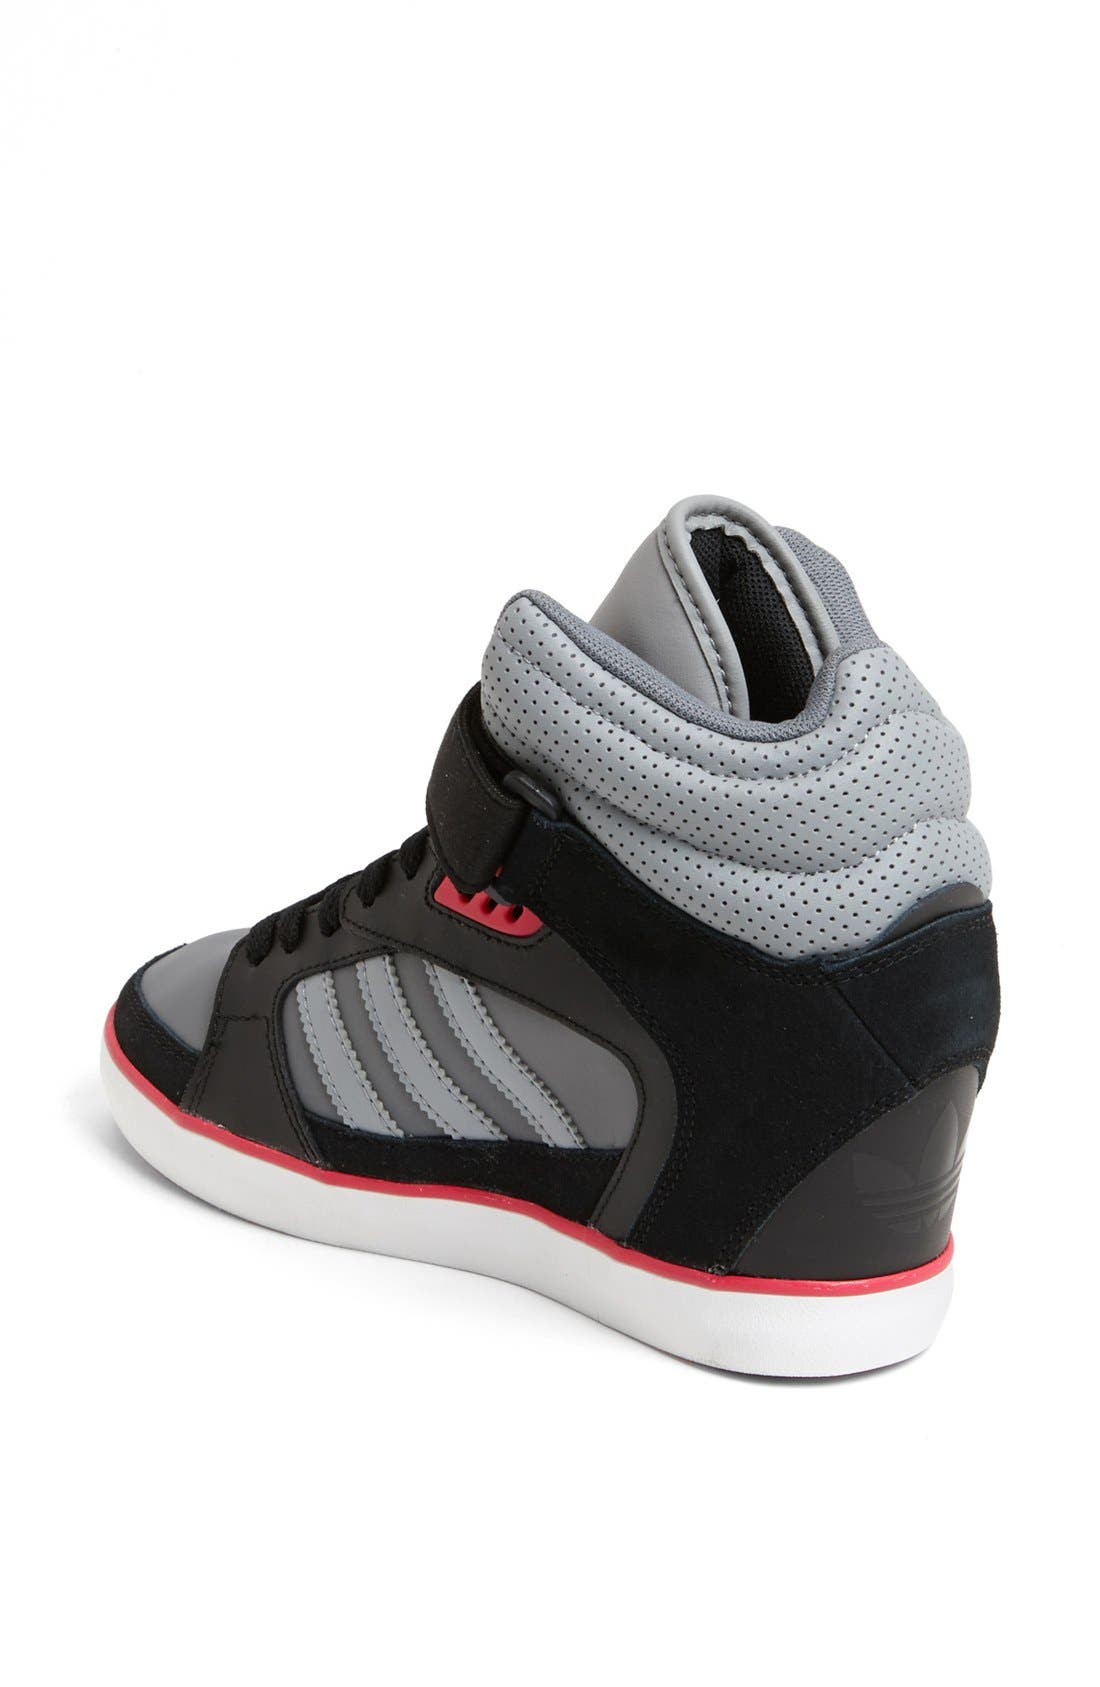 ADIDAS, 'Amberlight Up' Basketball Wedge Sneaker, Alternate thumbnail 2, color, 001